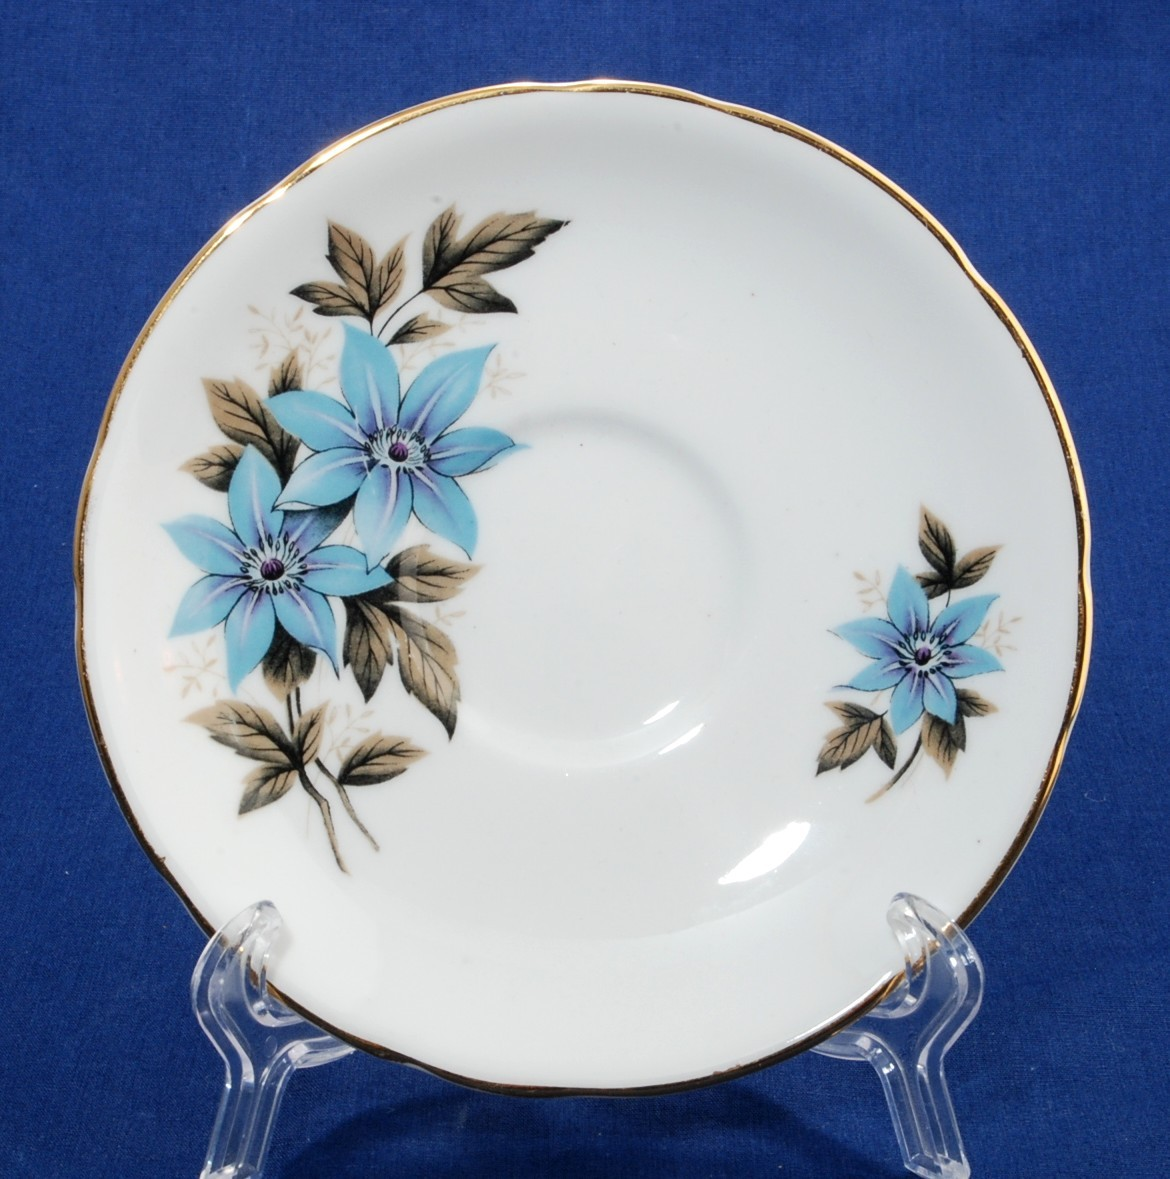 Primary image for Royal Stafford Cheshire Blue Bonnet Saucer Bone China